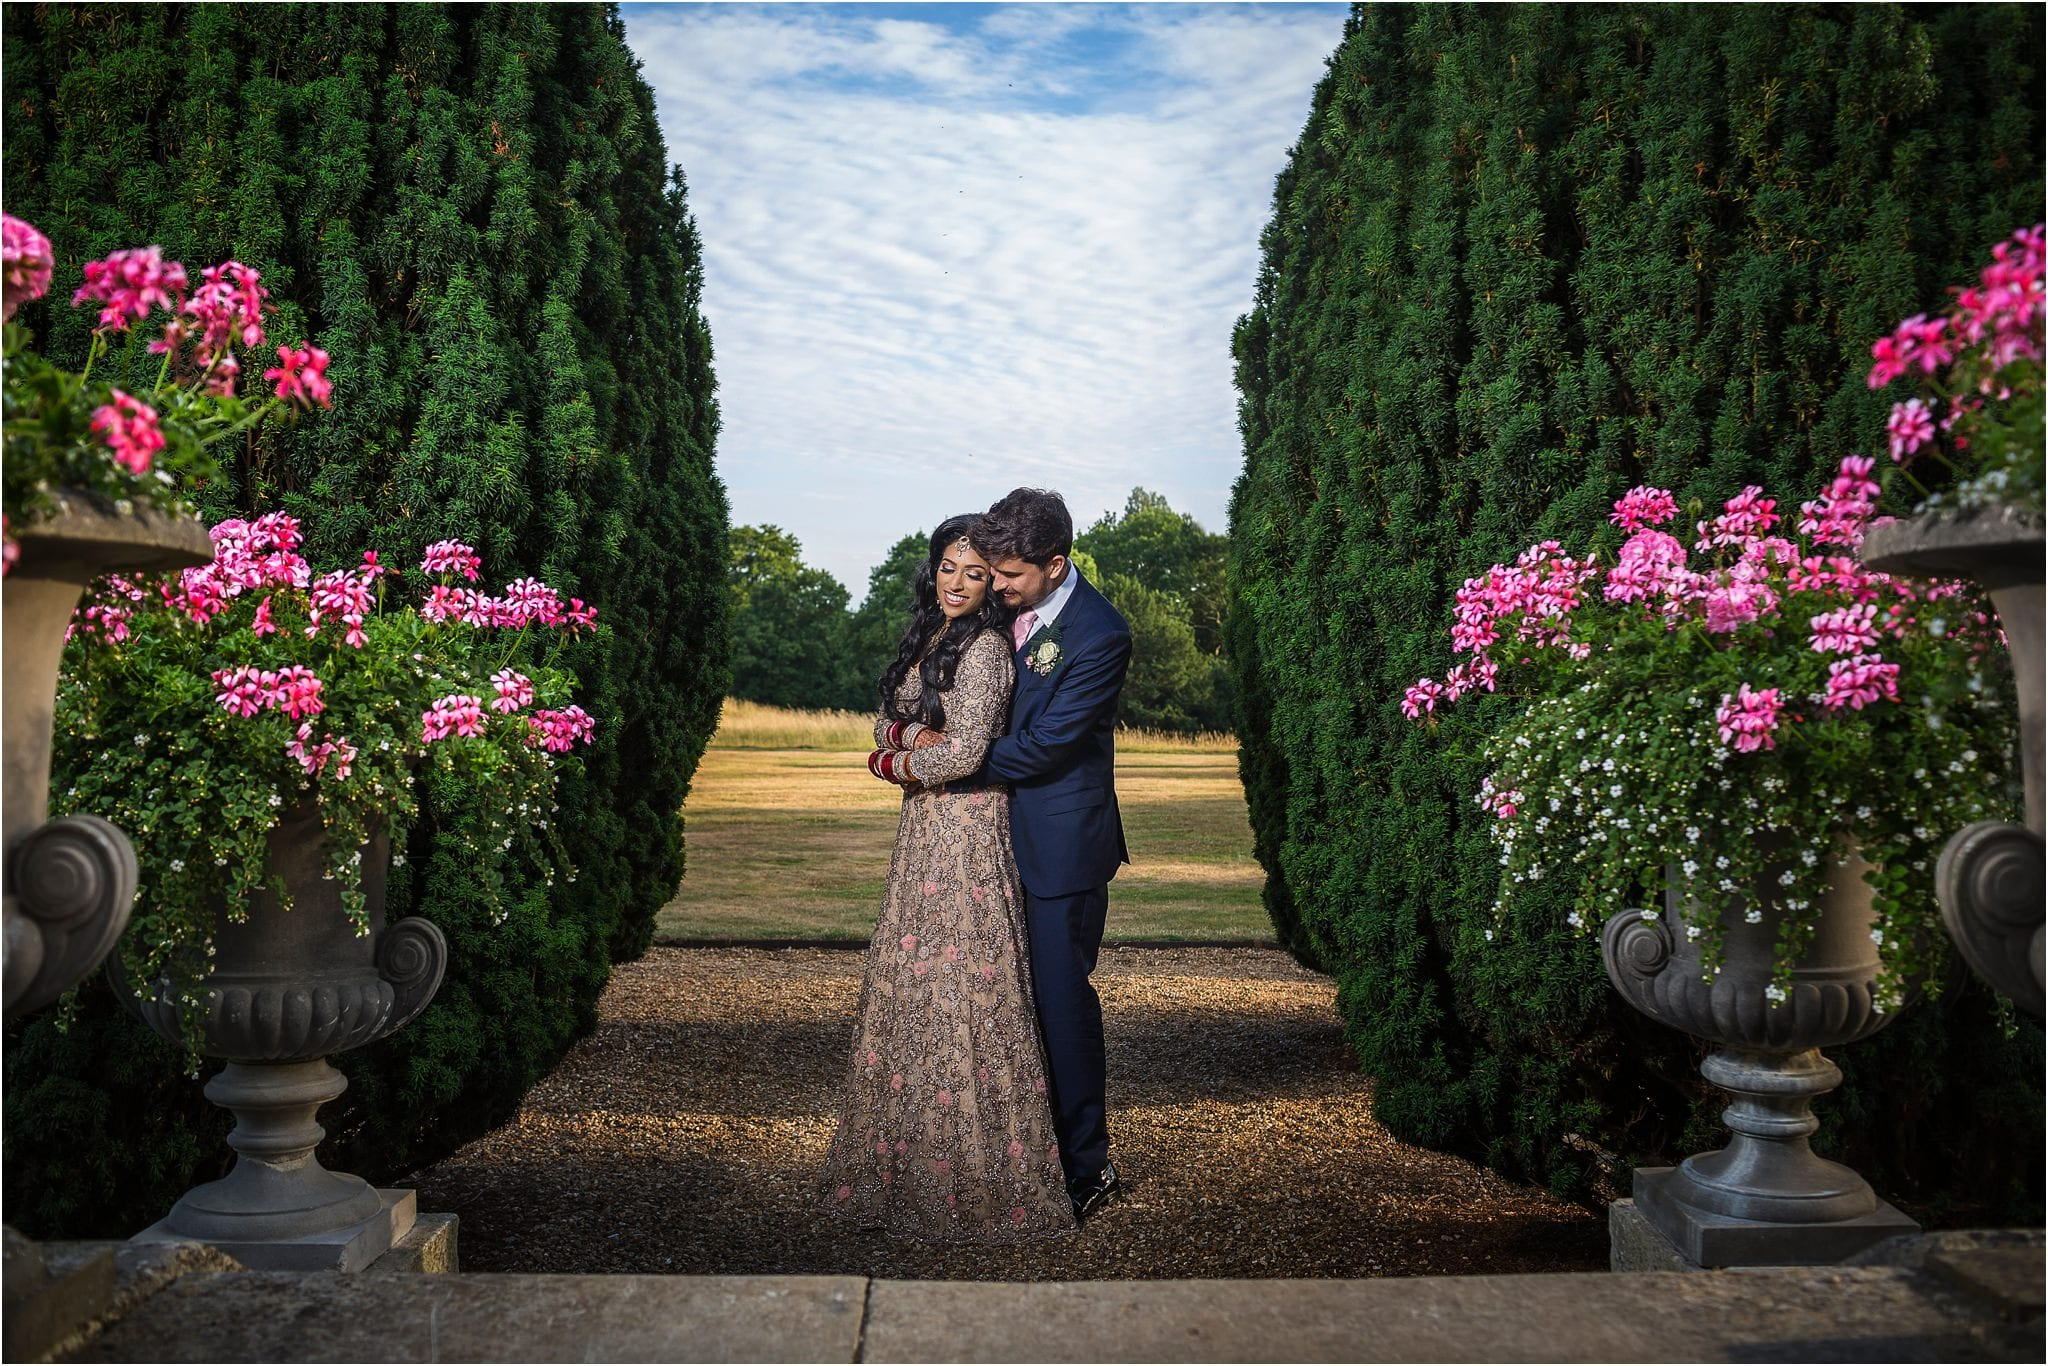 A couple hugging amongst trees and and pink flowers. Photography by Hedsor House wedding photographer S2 Images